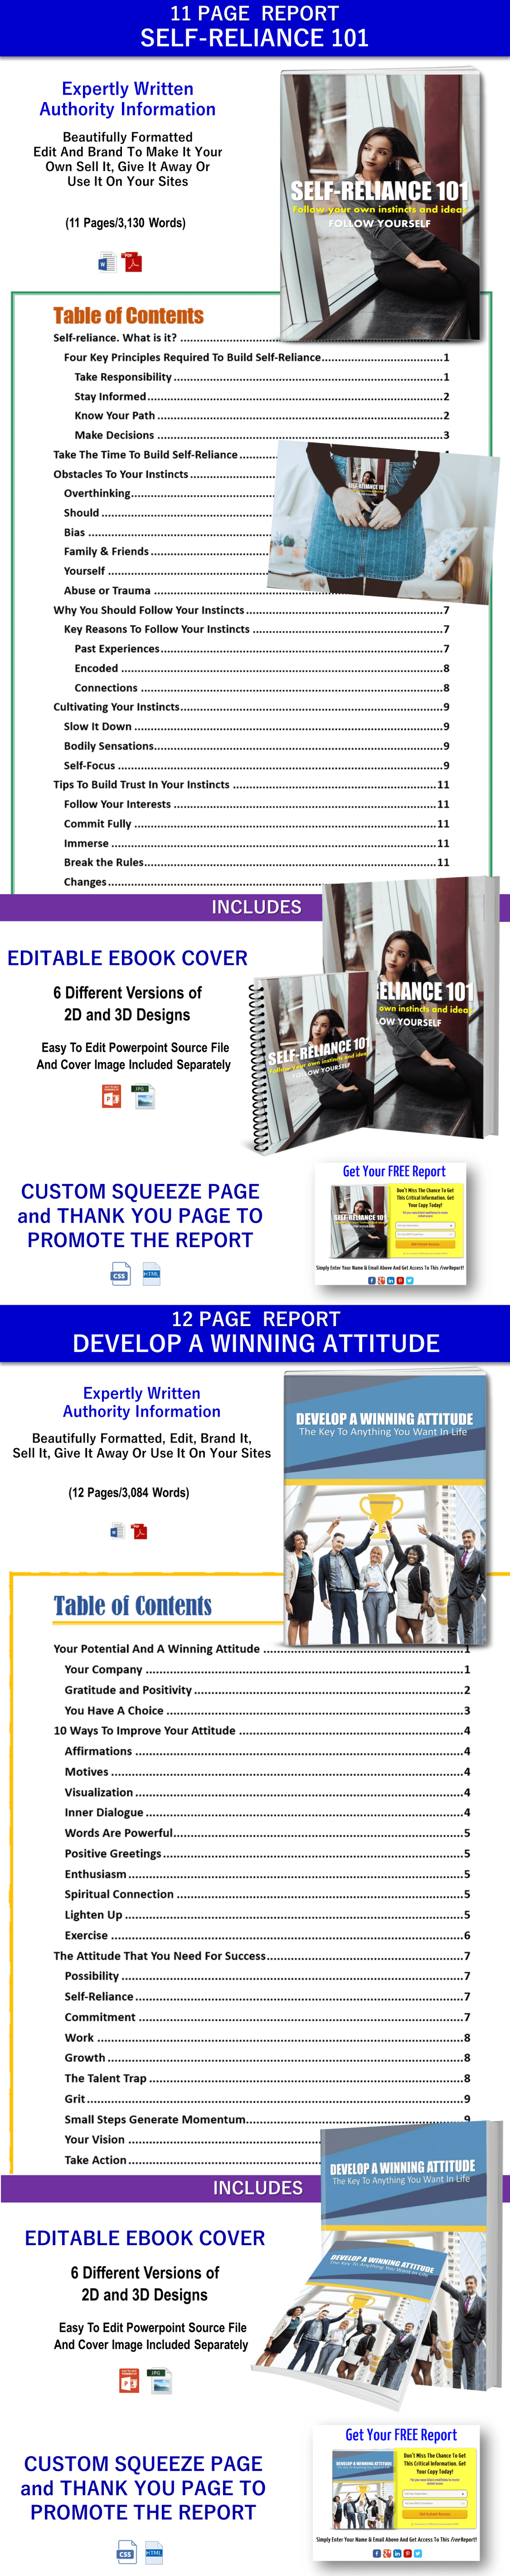 Power Of Habits In Shaping Our Destiny Content With PLR Rights